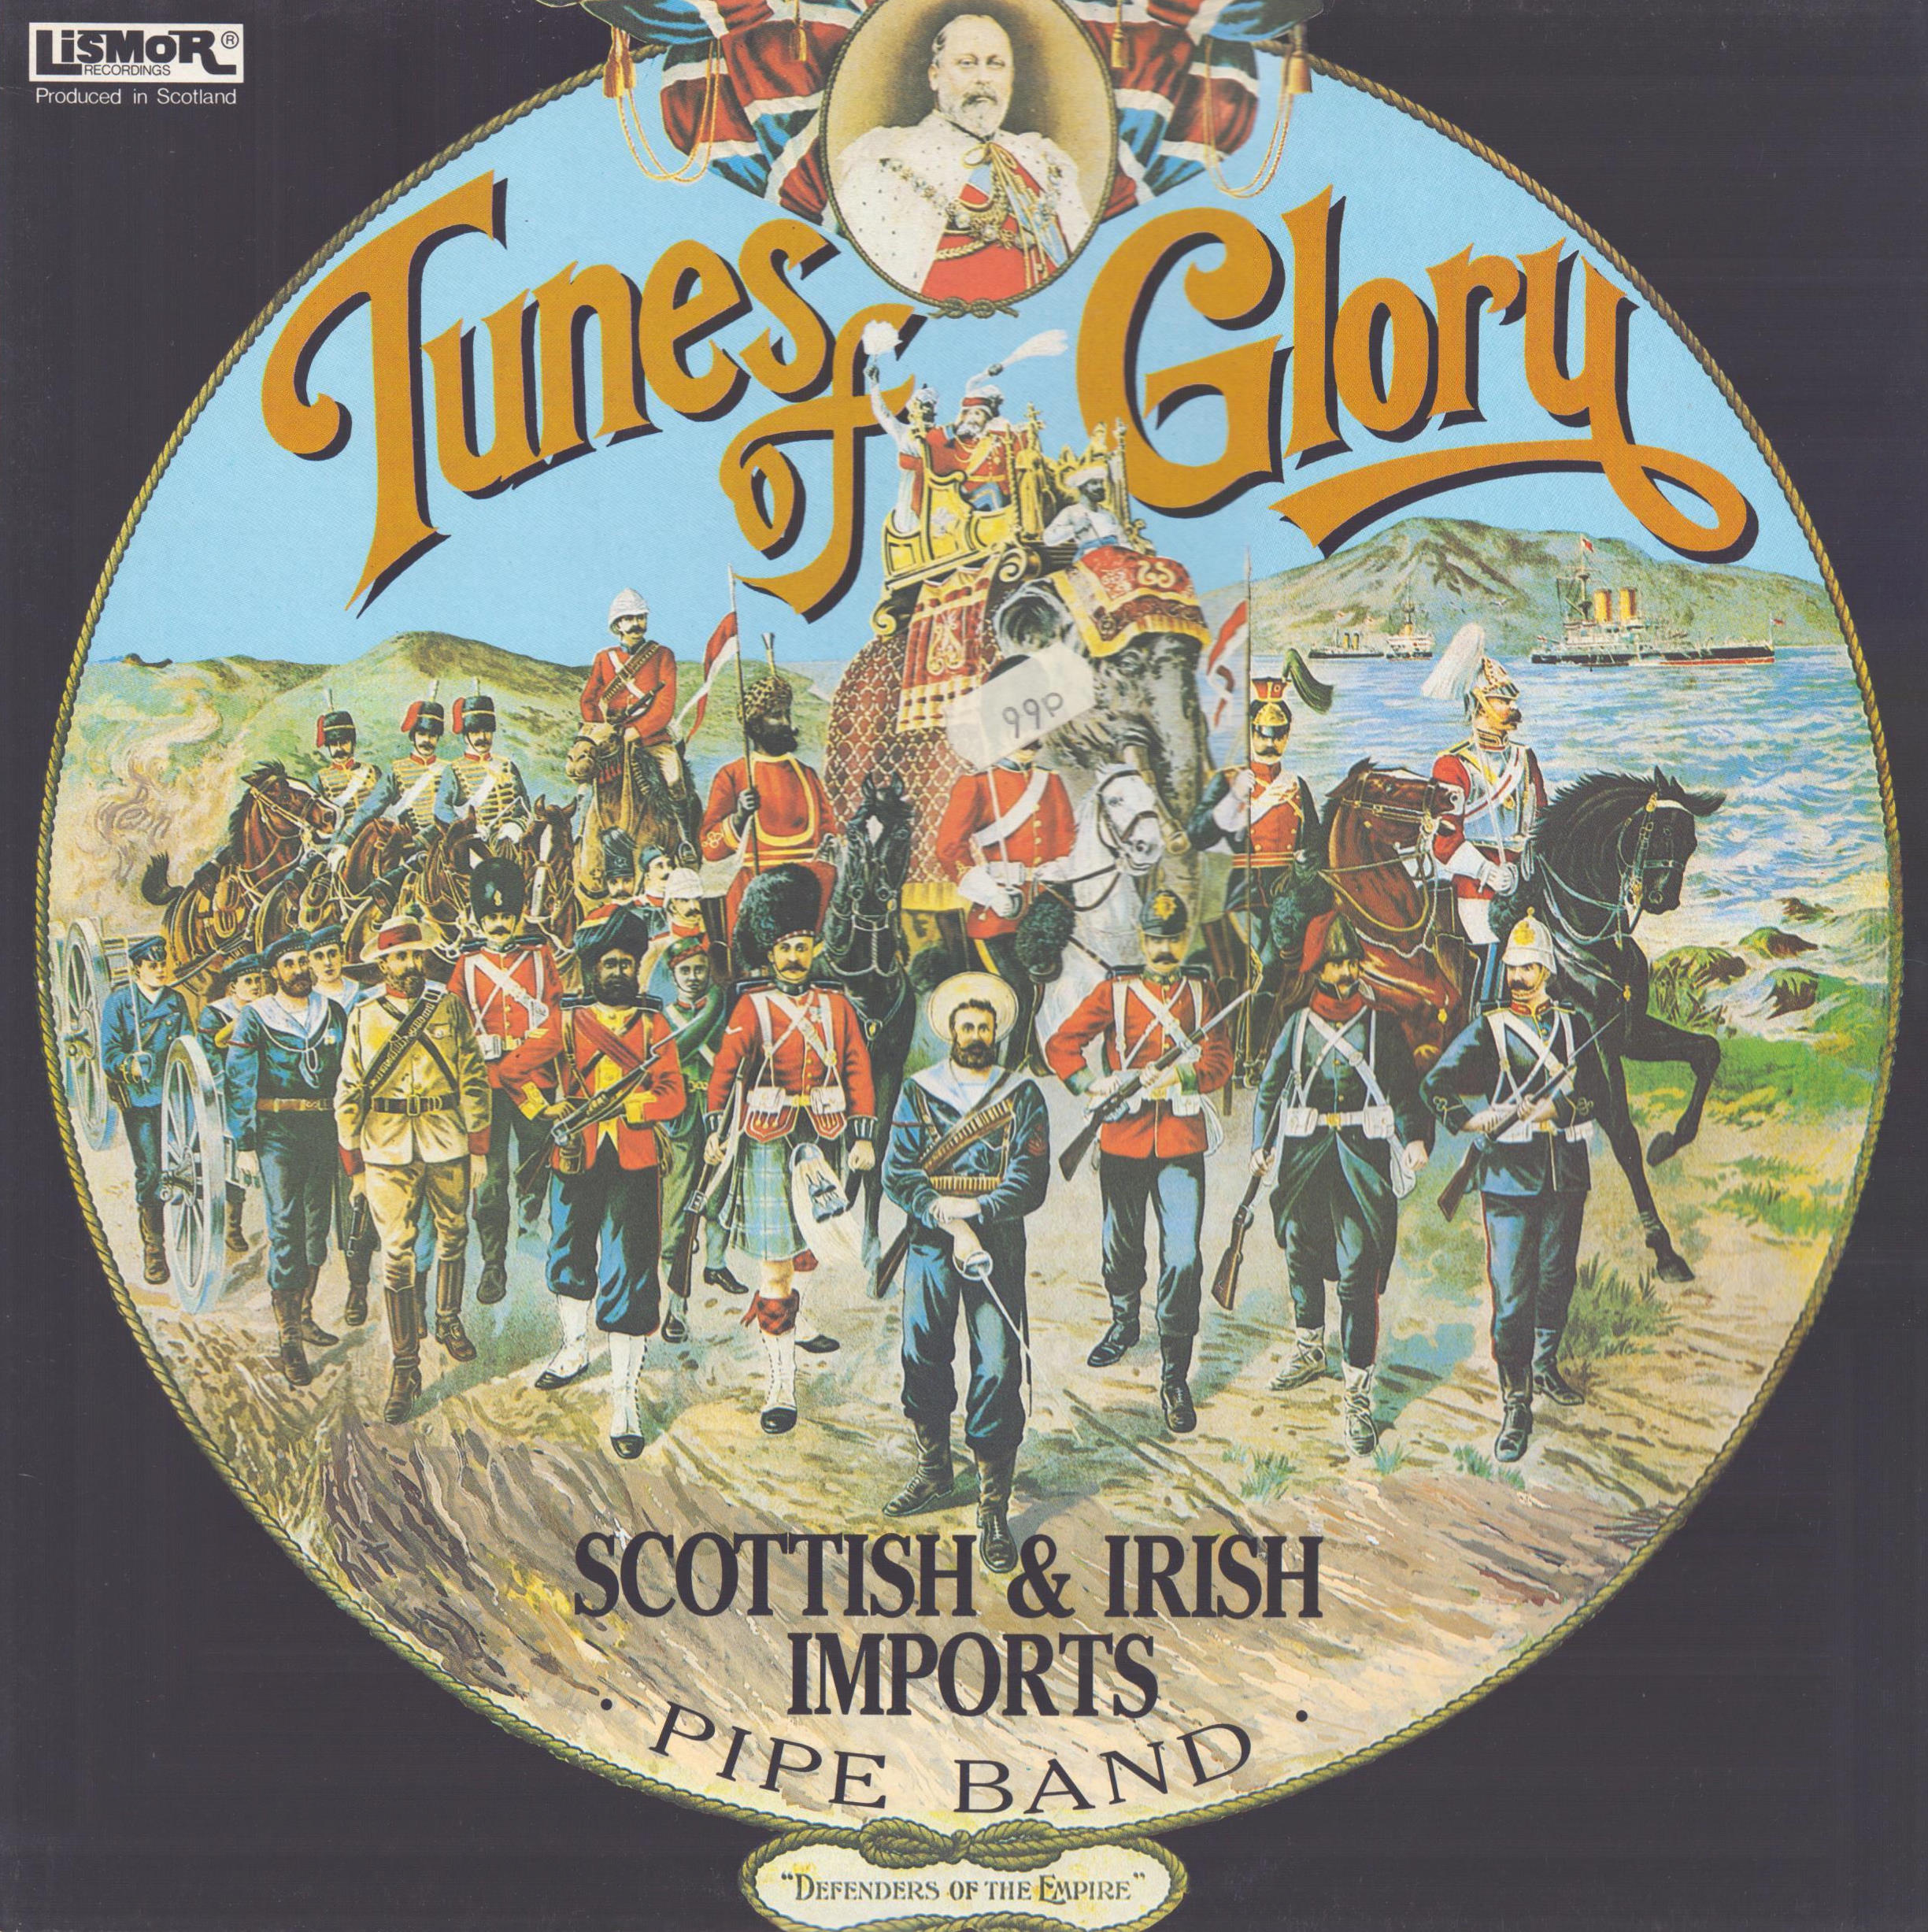 SCOTTISH & IRISH IMPORTS PIPE BAND - Tunes Of Glory - 33T